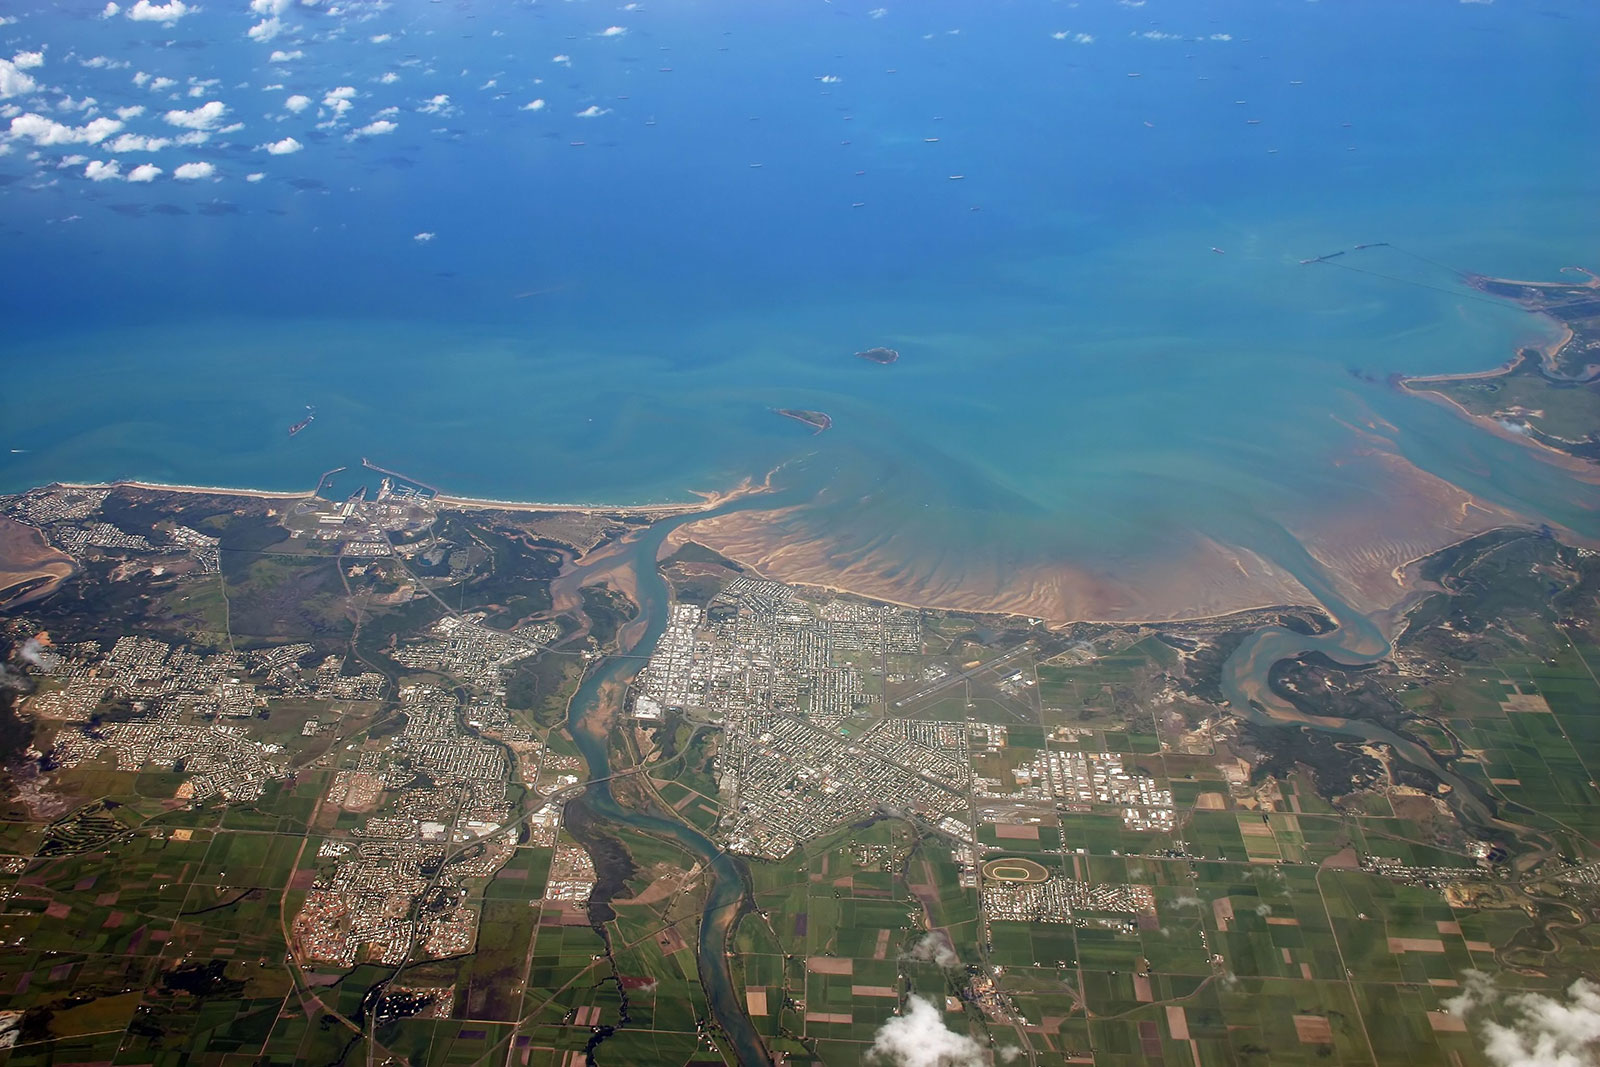 Mackay, QLD - Australia's 18th Largest City